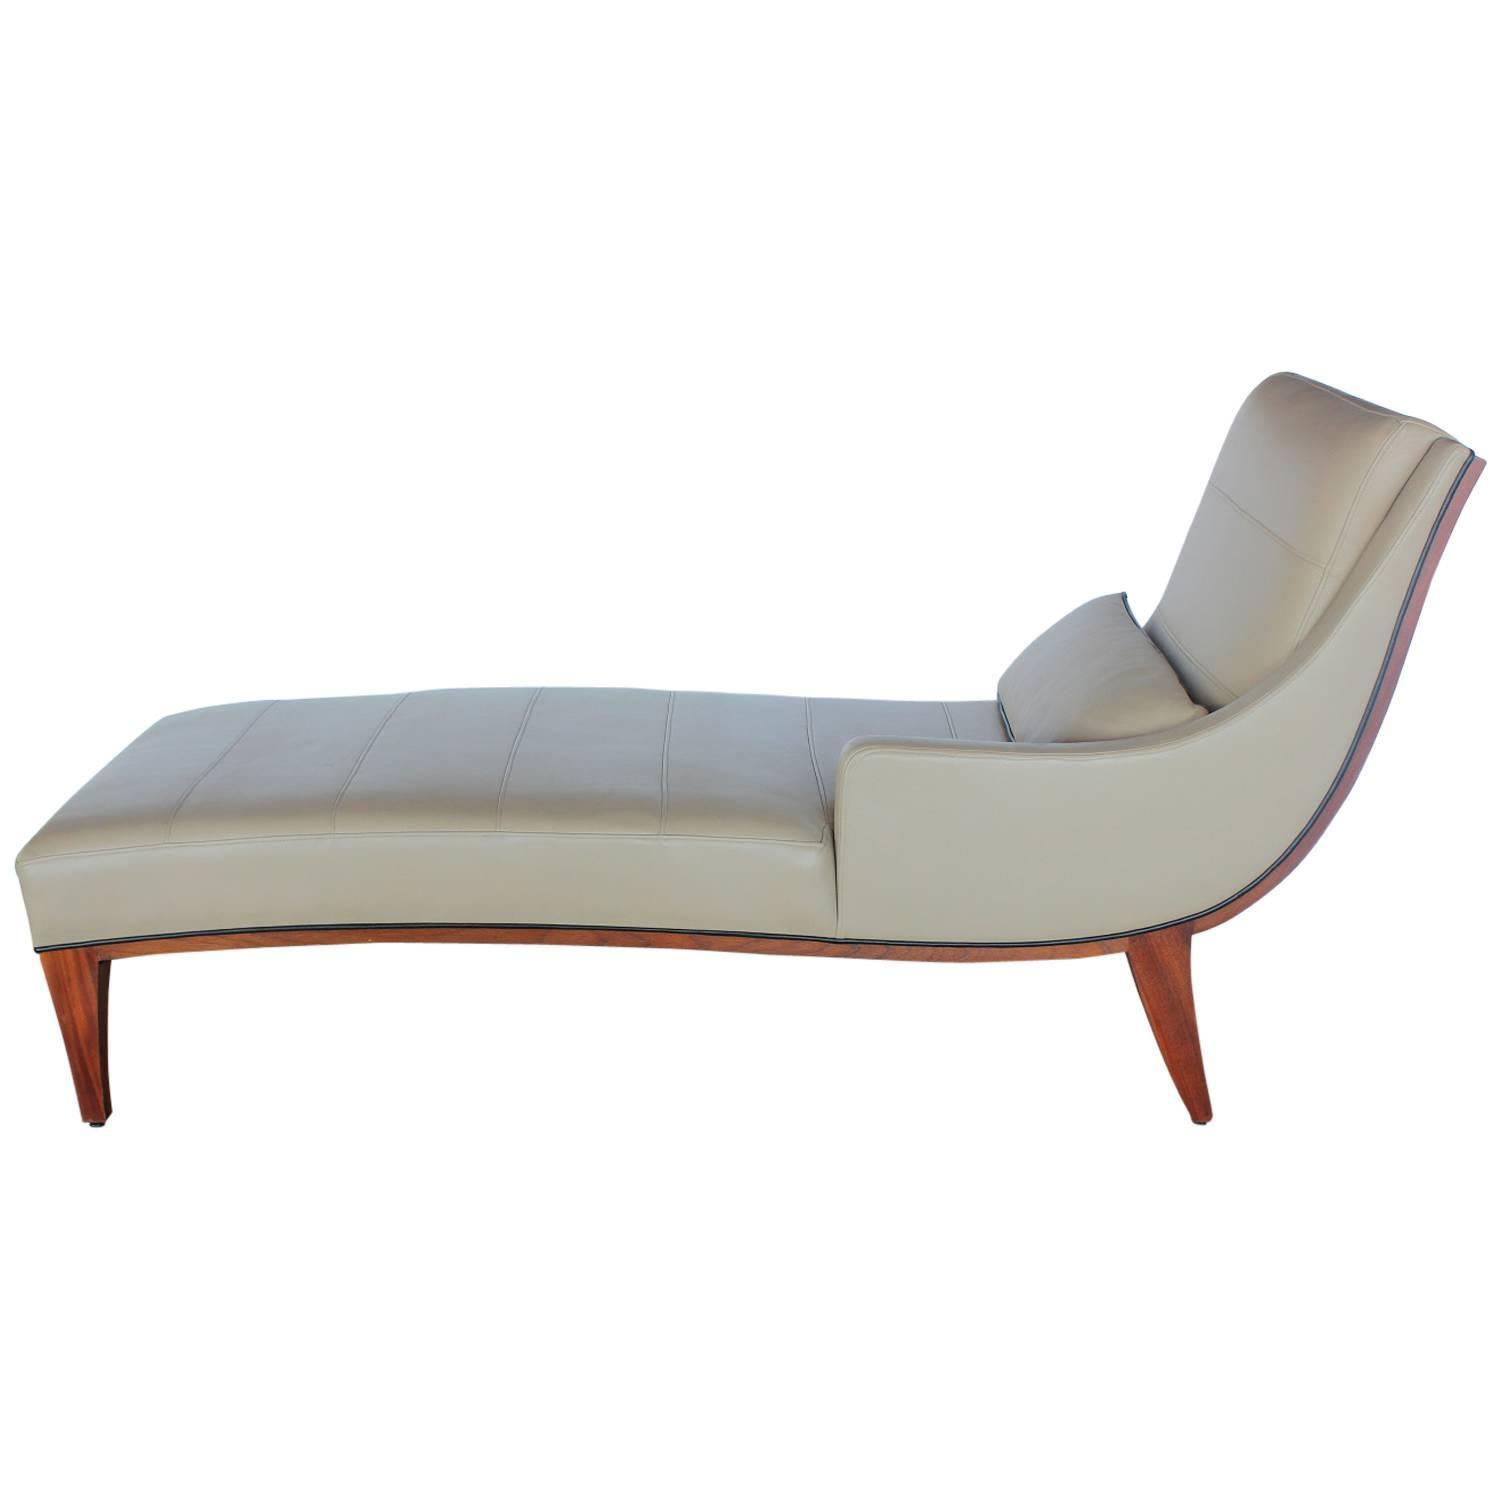 Modern Leather Chaise Lounge By Widdicomb At 1stdibs